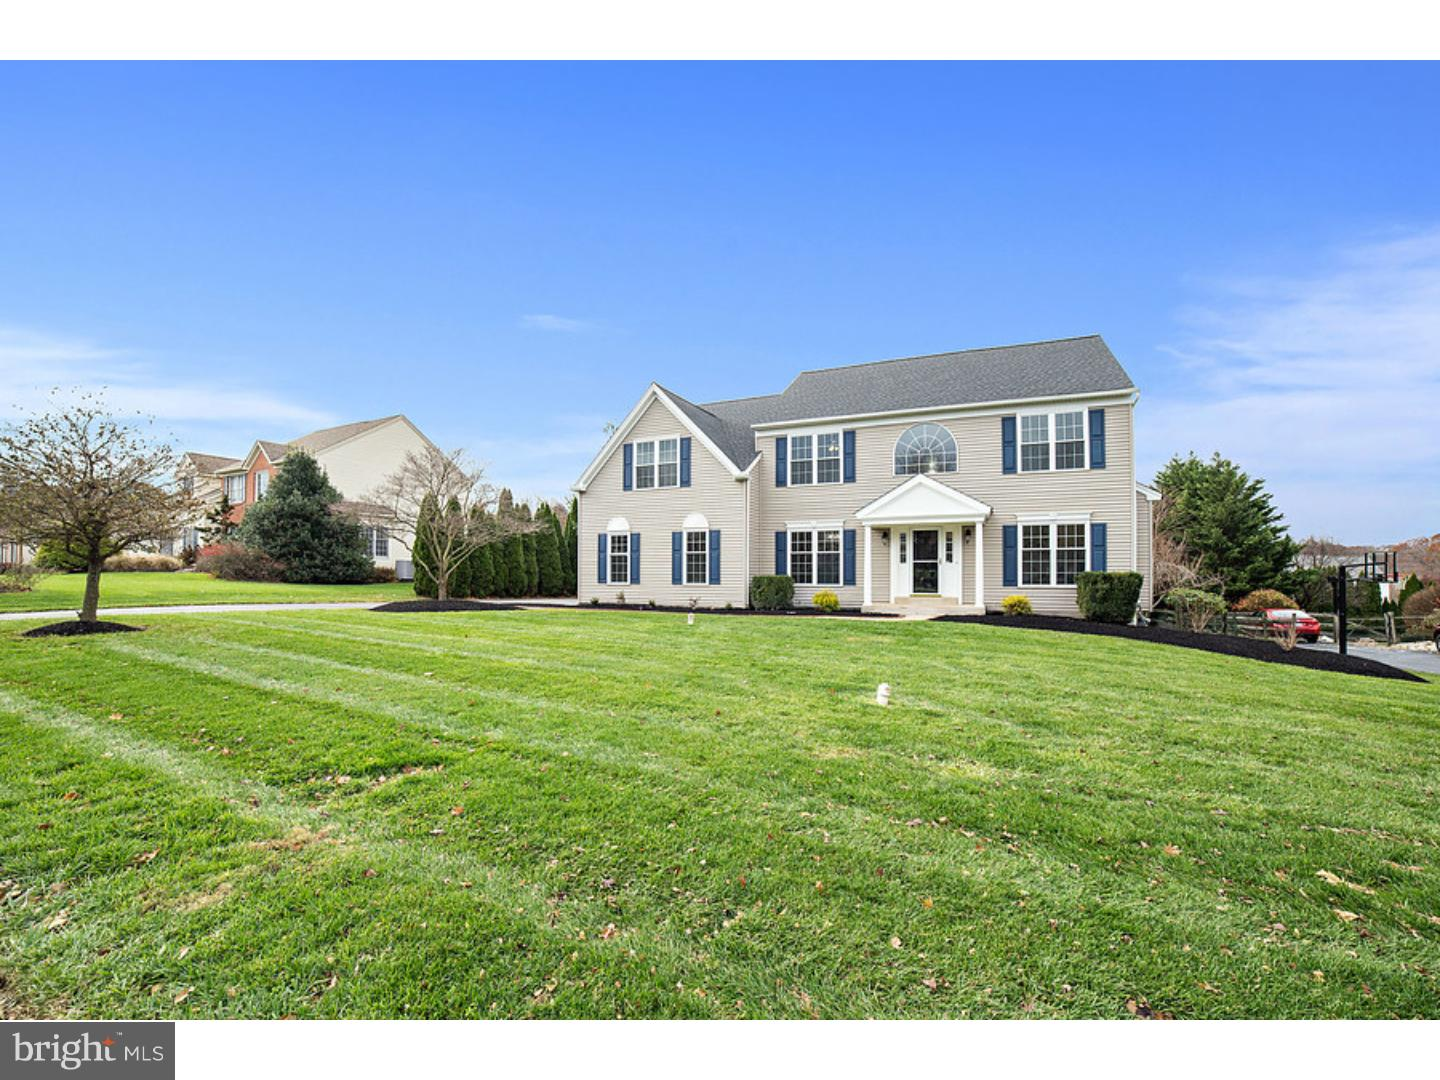 1406 FULL CRY COURT, WEST CHESTER, PA 19380